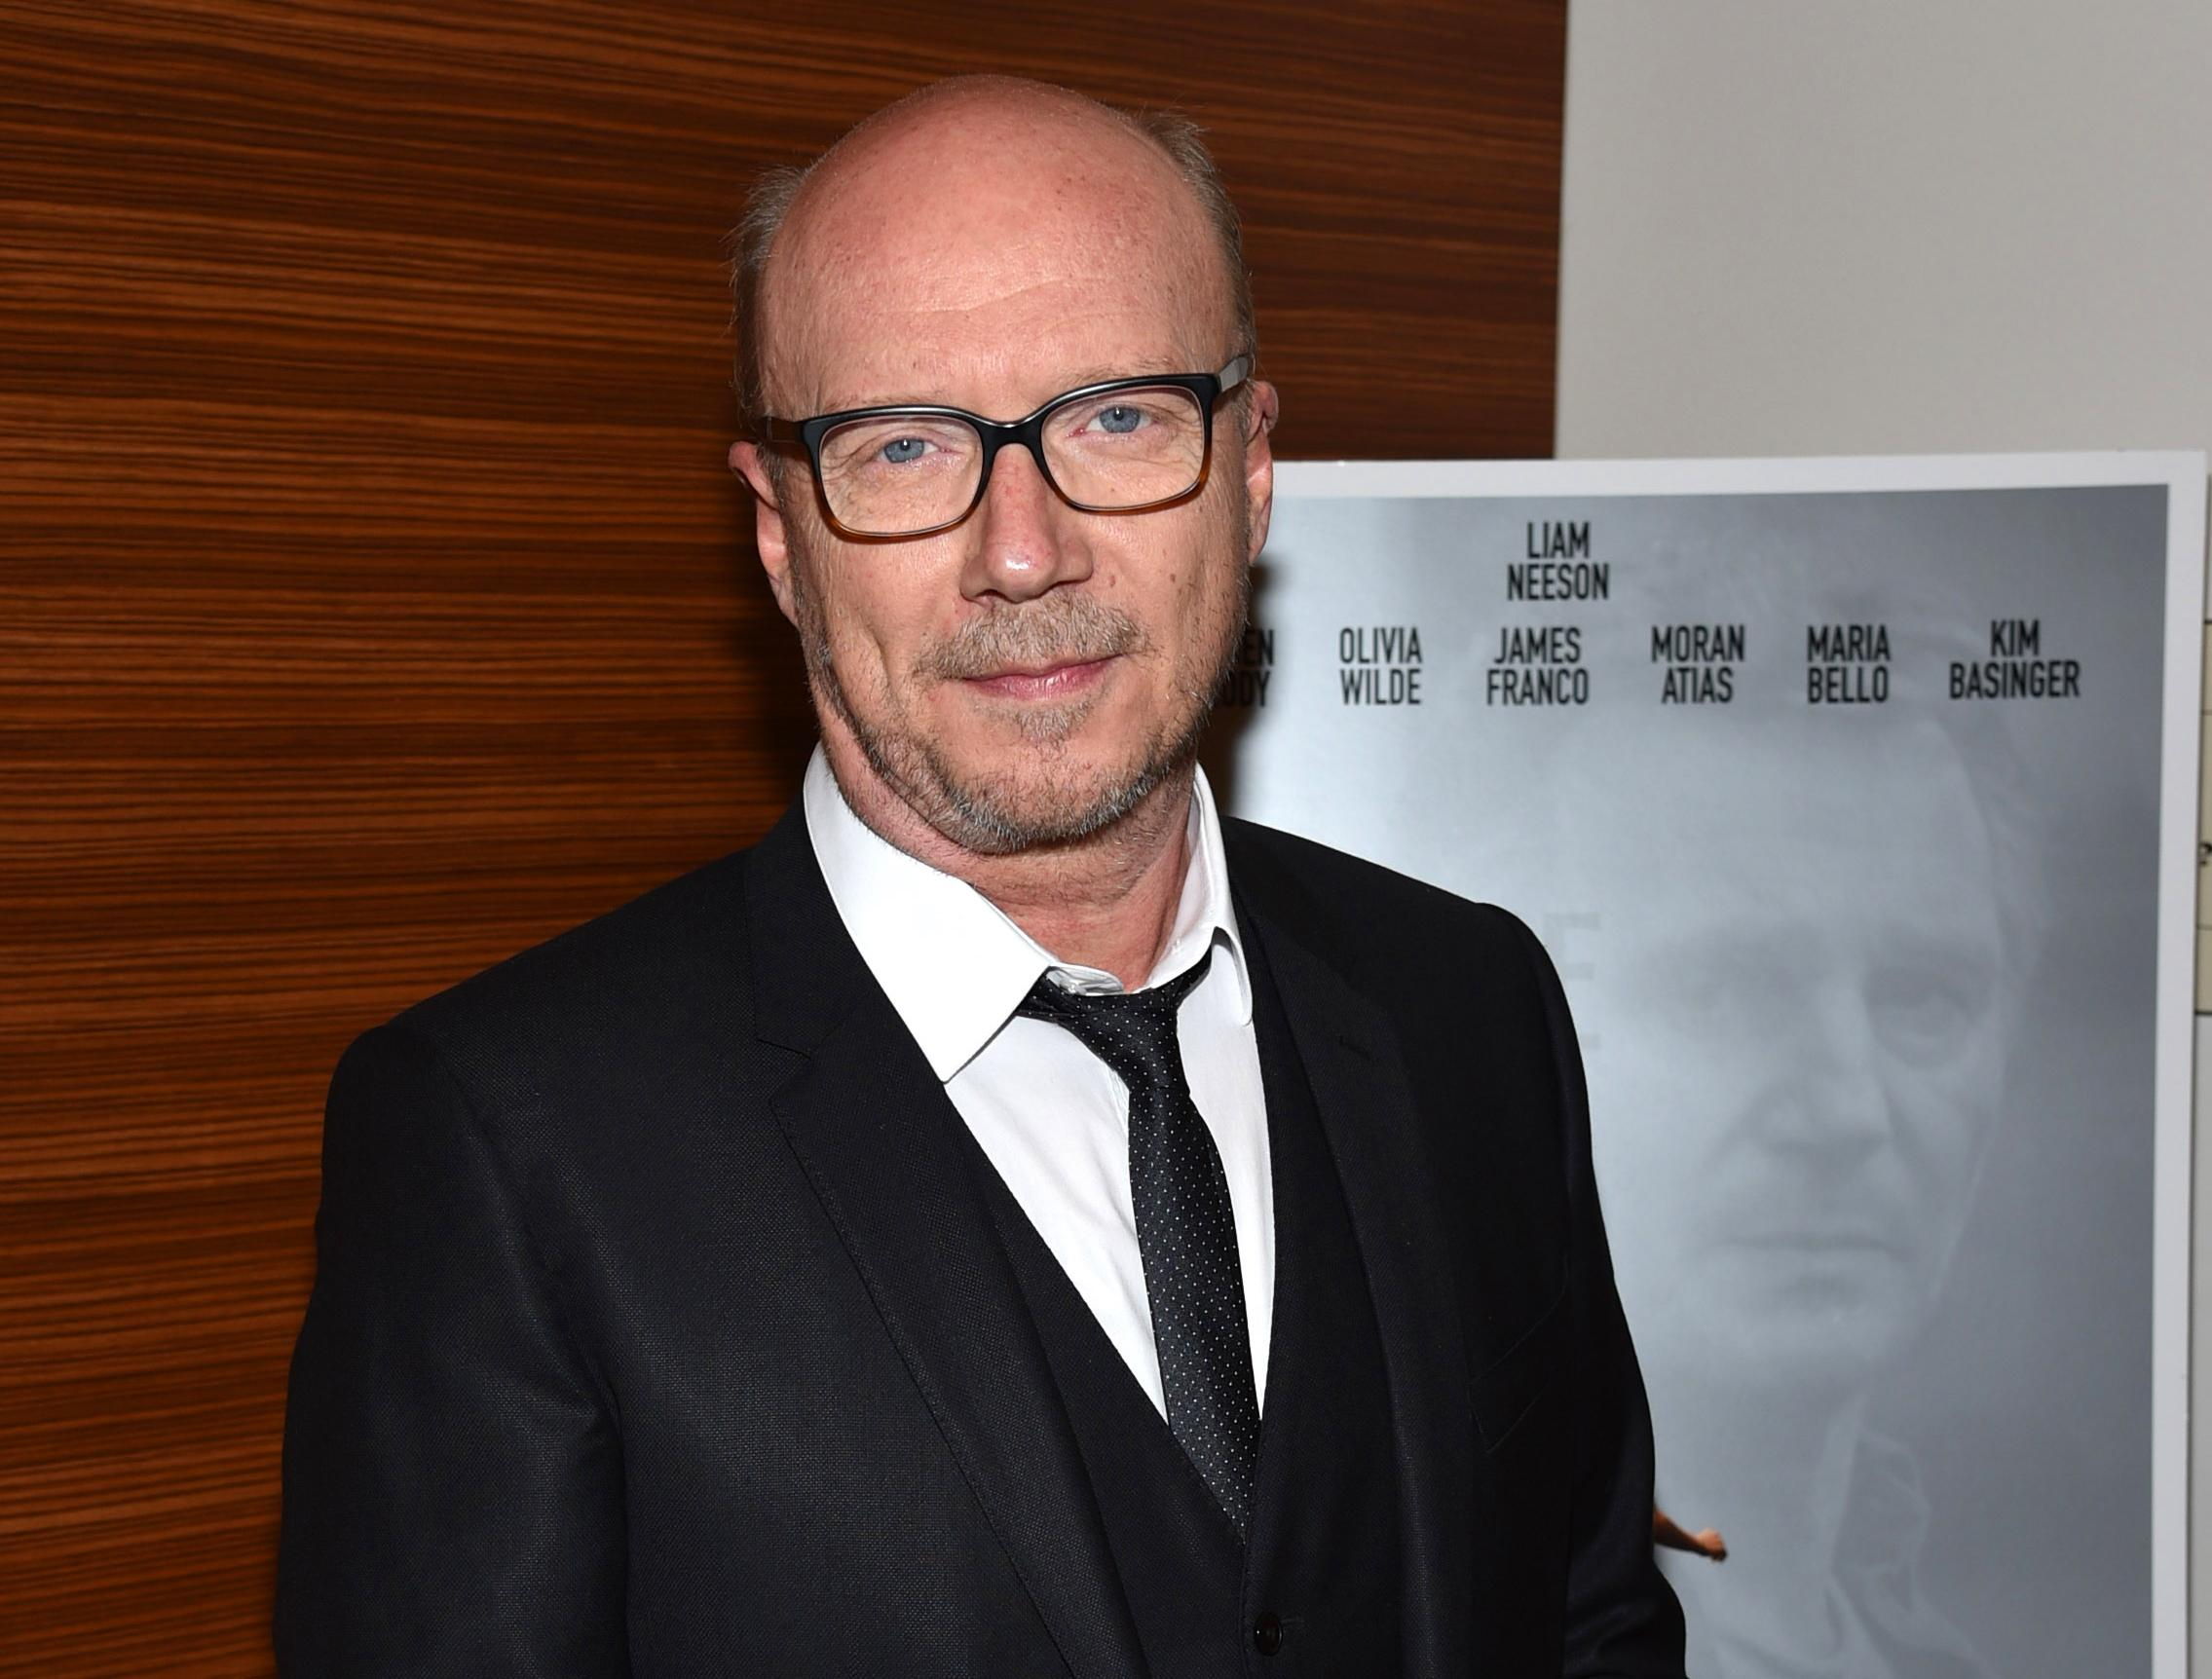 Did the Church of Scientology frame Paul Haggis? Leah Remini thinks so